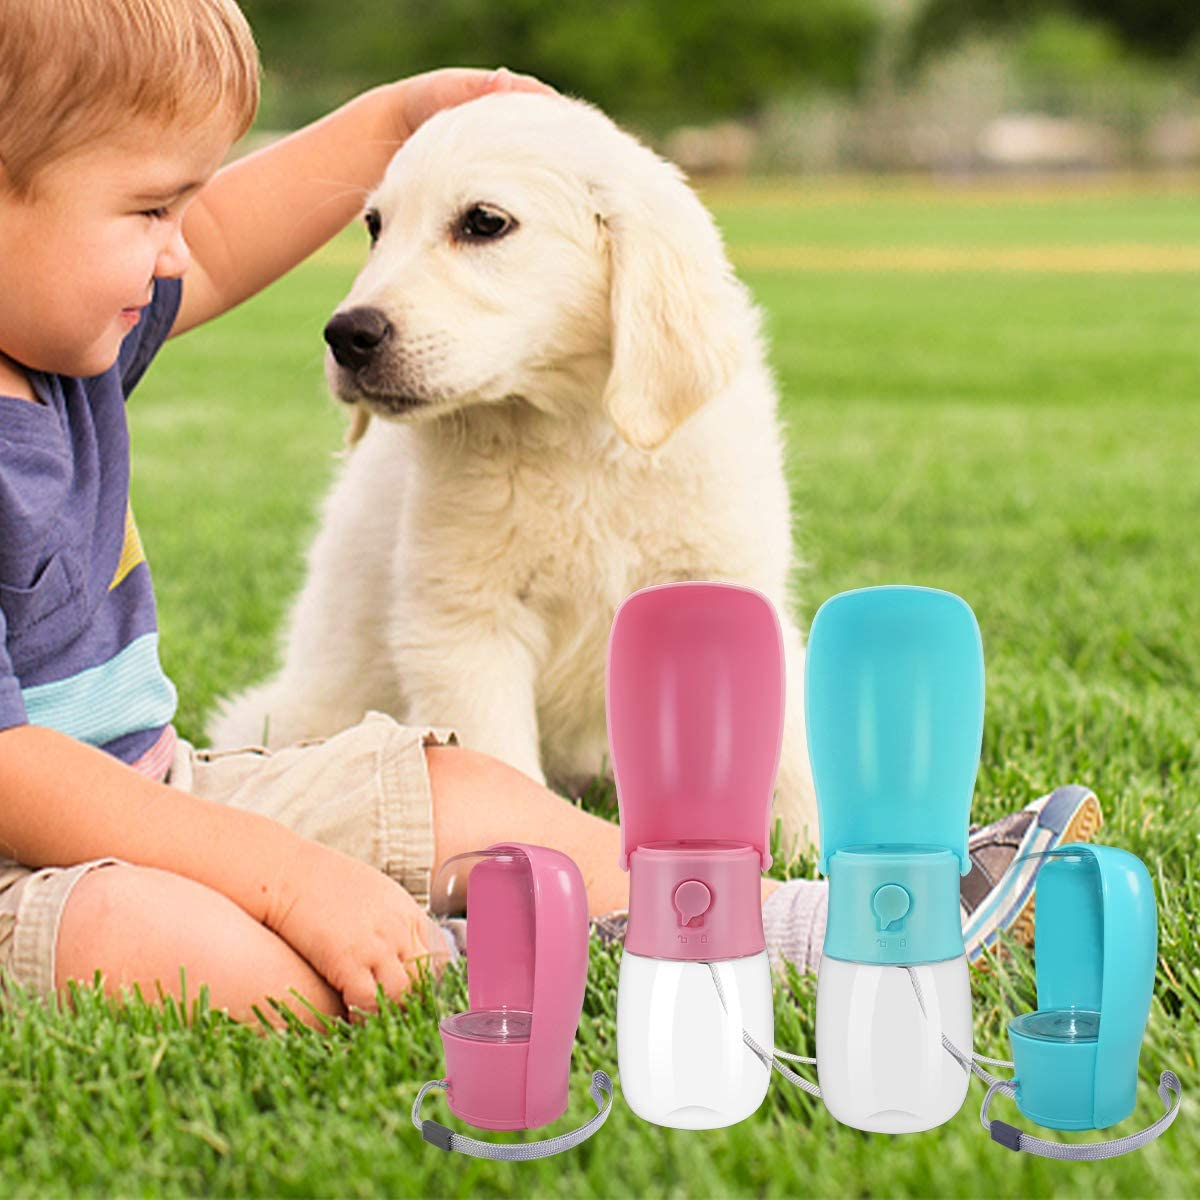 for Cat,Dogs and Other Animals Water Cup Leakproof Pet Water Bottle for Travel,BPA Free Water Bottle TOARTI Dog Water Bottle,Foldable Pet Portable Water Dispenser Dogs 10 Oz